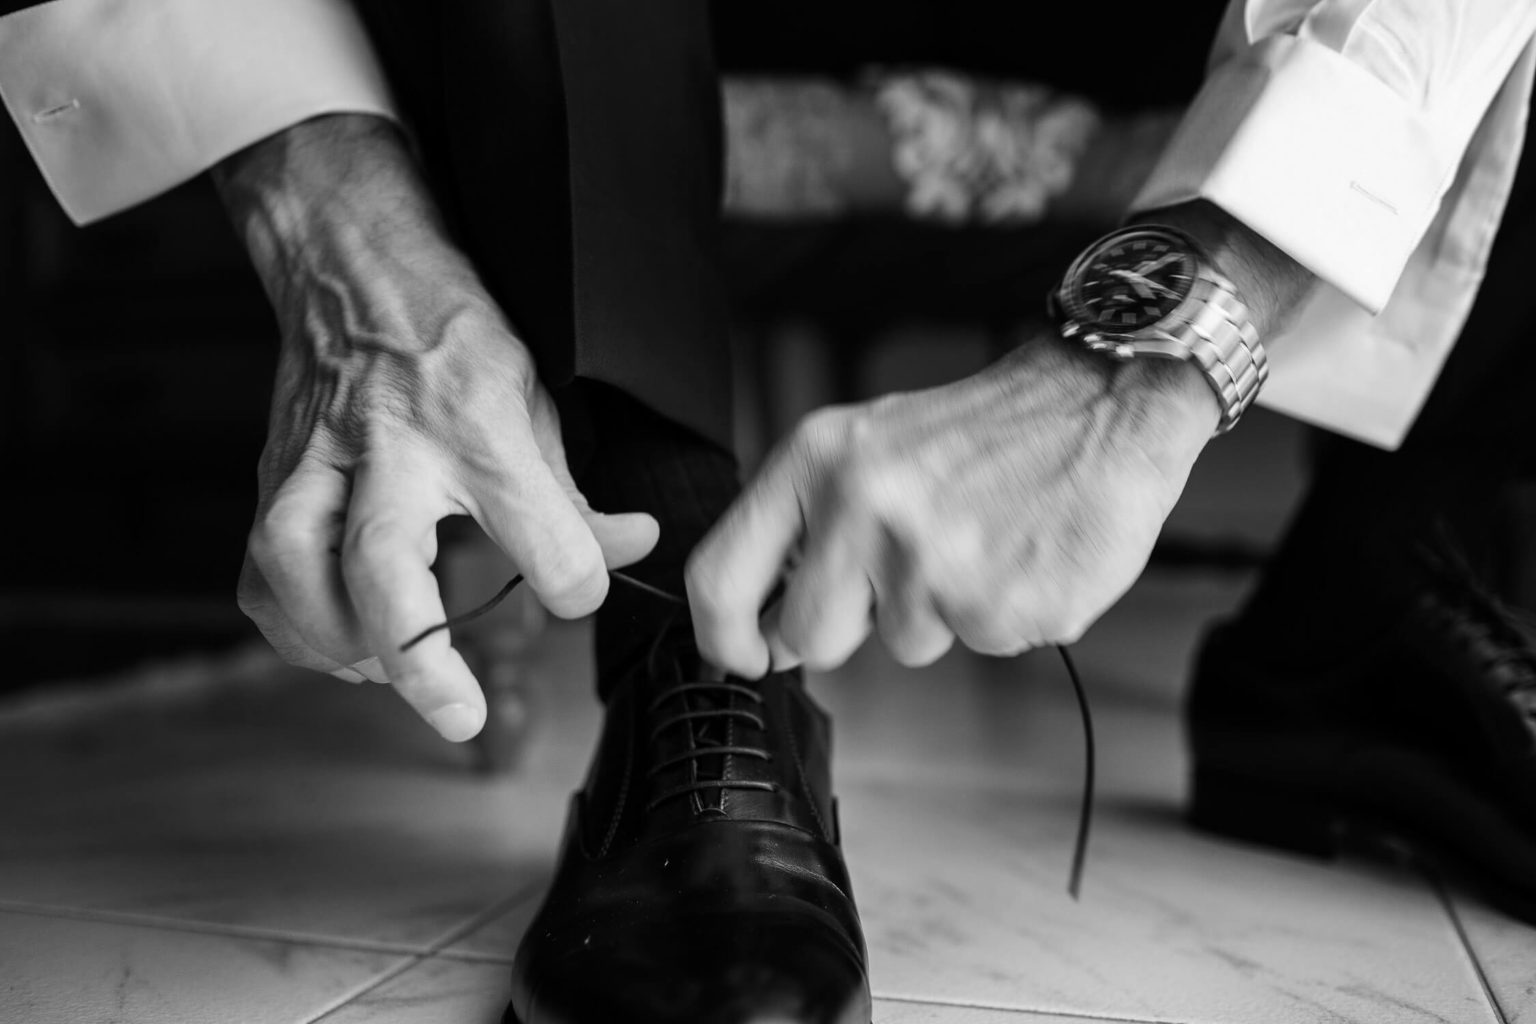 Detail of hands lacing shoes, black and white photography by Nino Lombardo